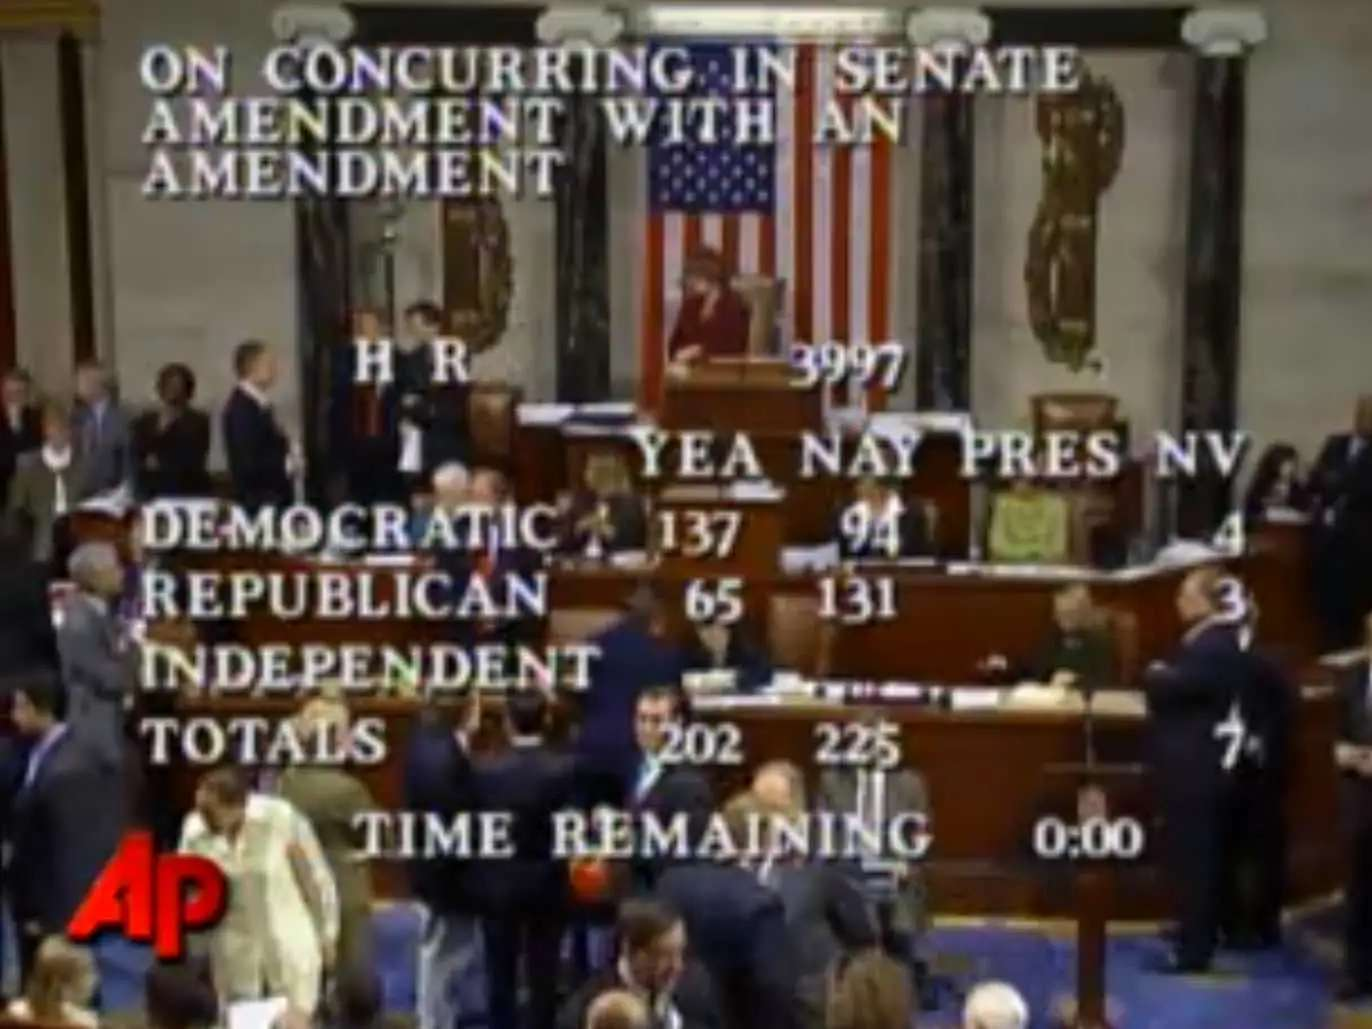 SEP 29, 2008: The U.S. House of Representatives defeats a proposed $700 billion emergency bailout package 228-205. Stocks collapse as the votes are counted live.